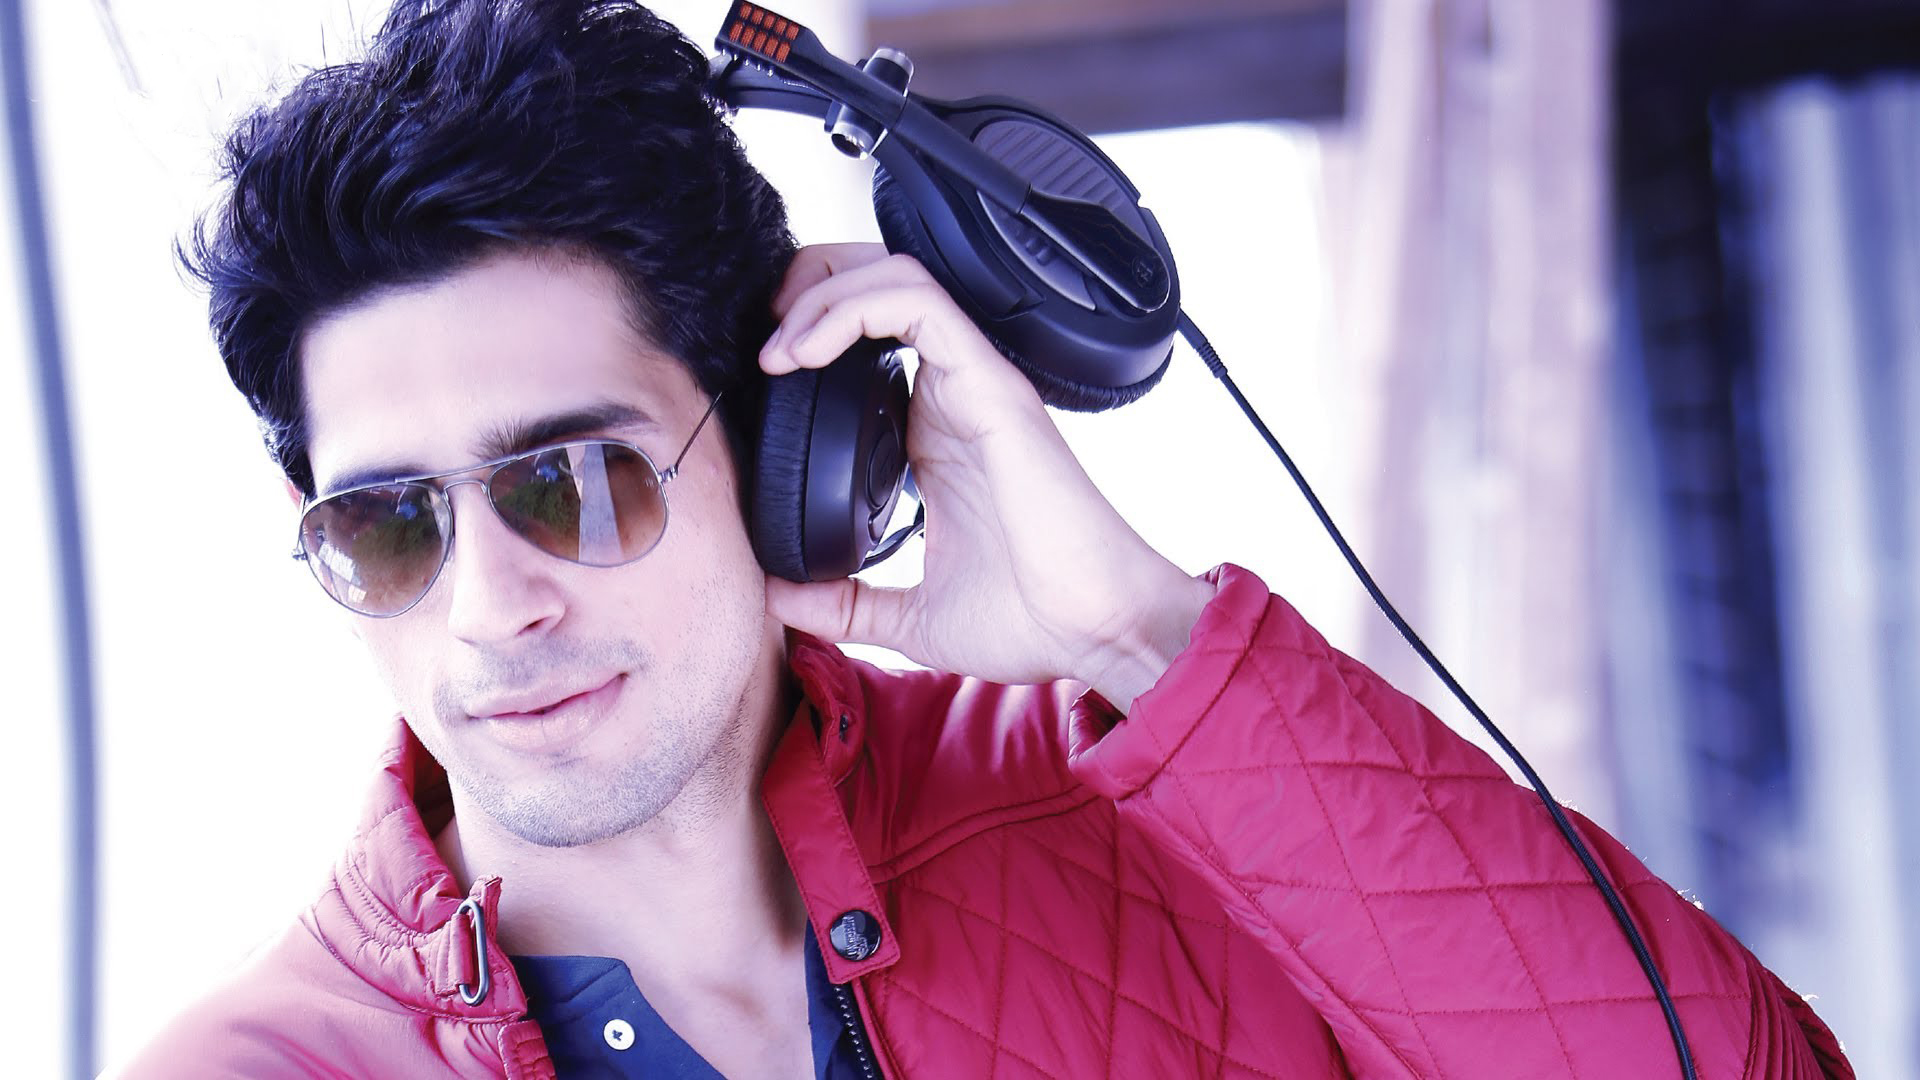 Waste of time to think about other people's work: Sidharth